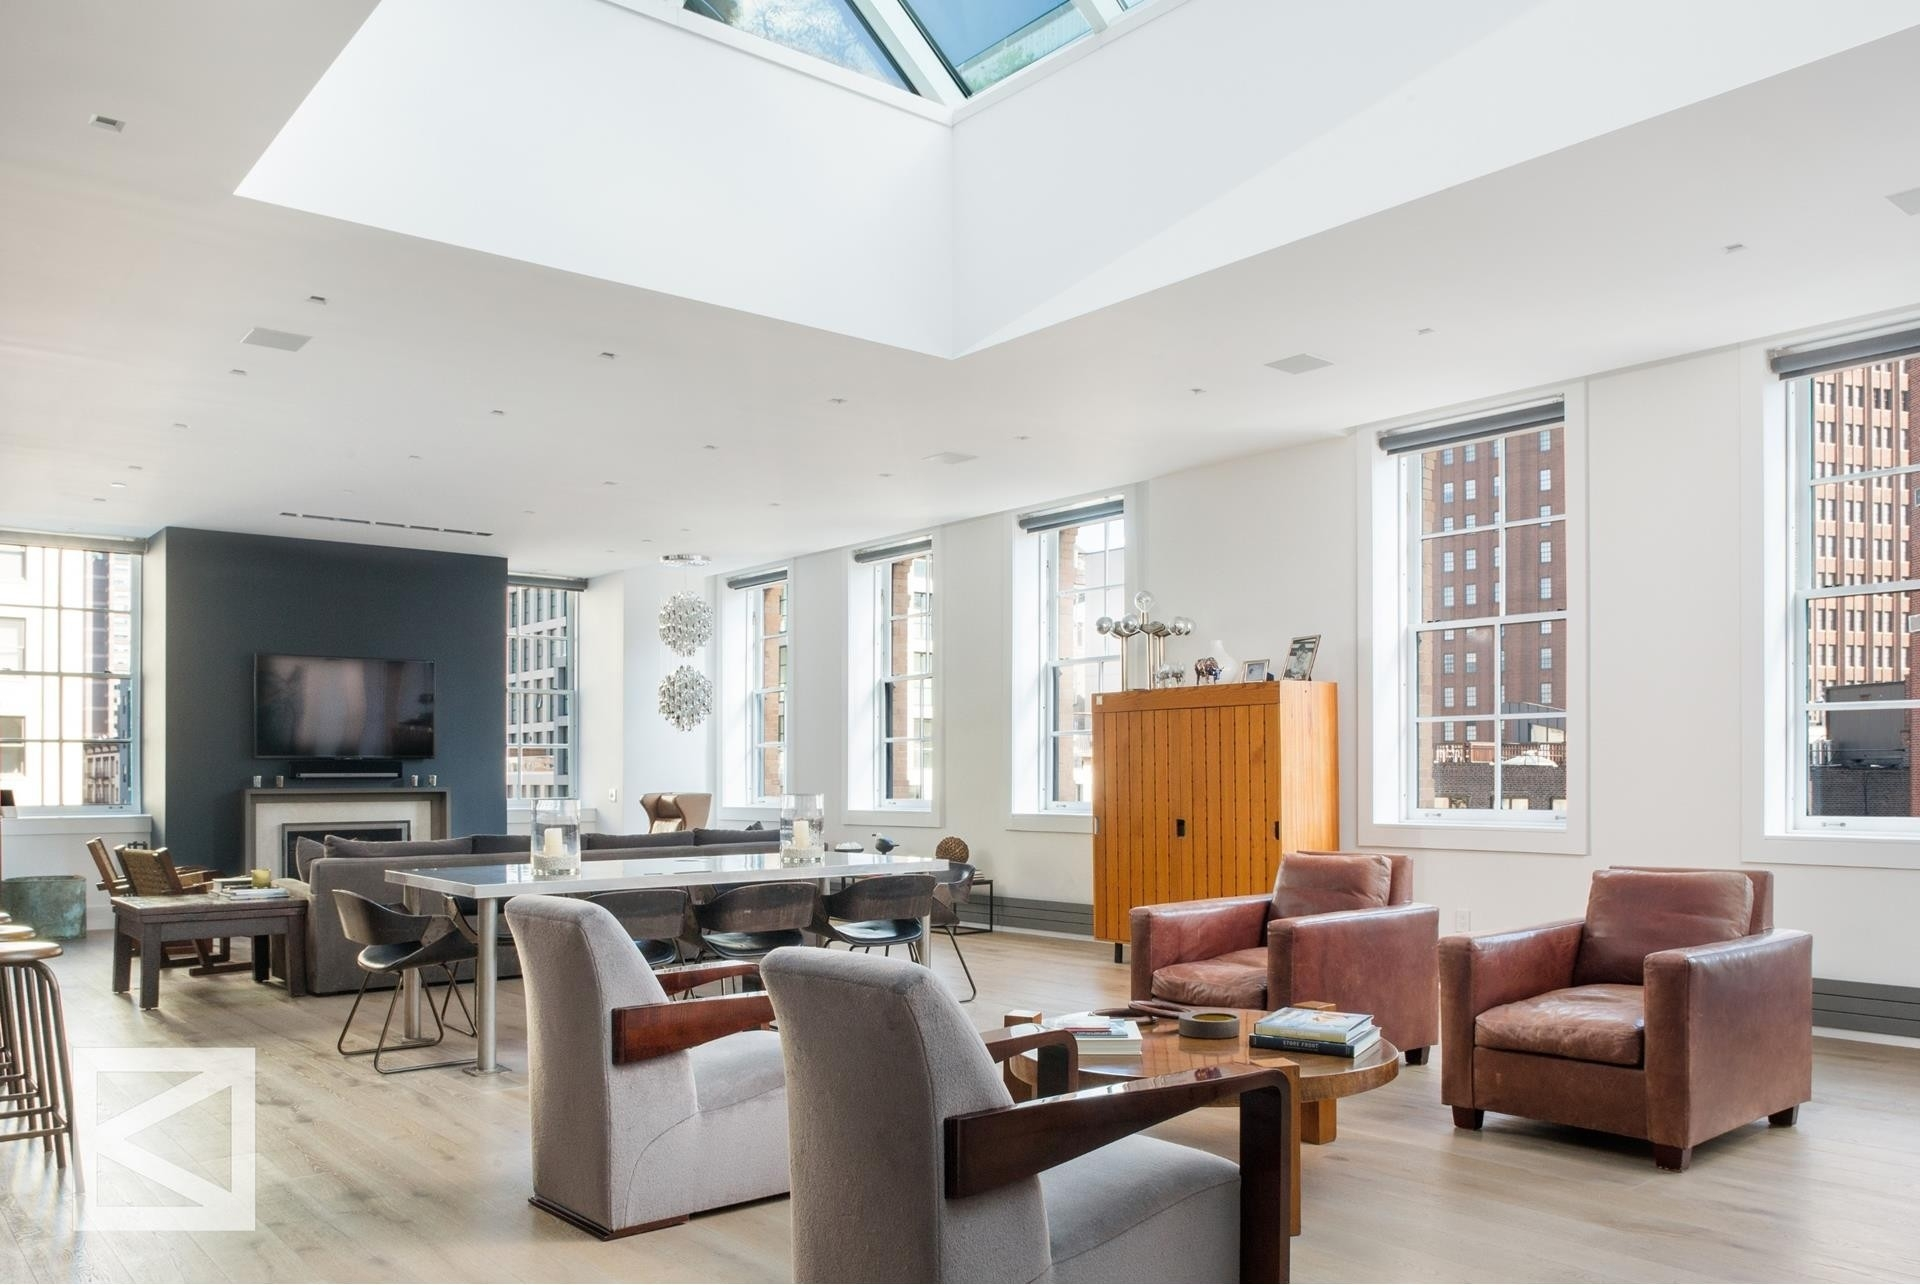 Condominium for Sale at 140 FRANKLIN ST , PHC TriBeCa, New York, NY 10013